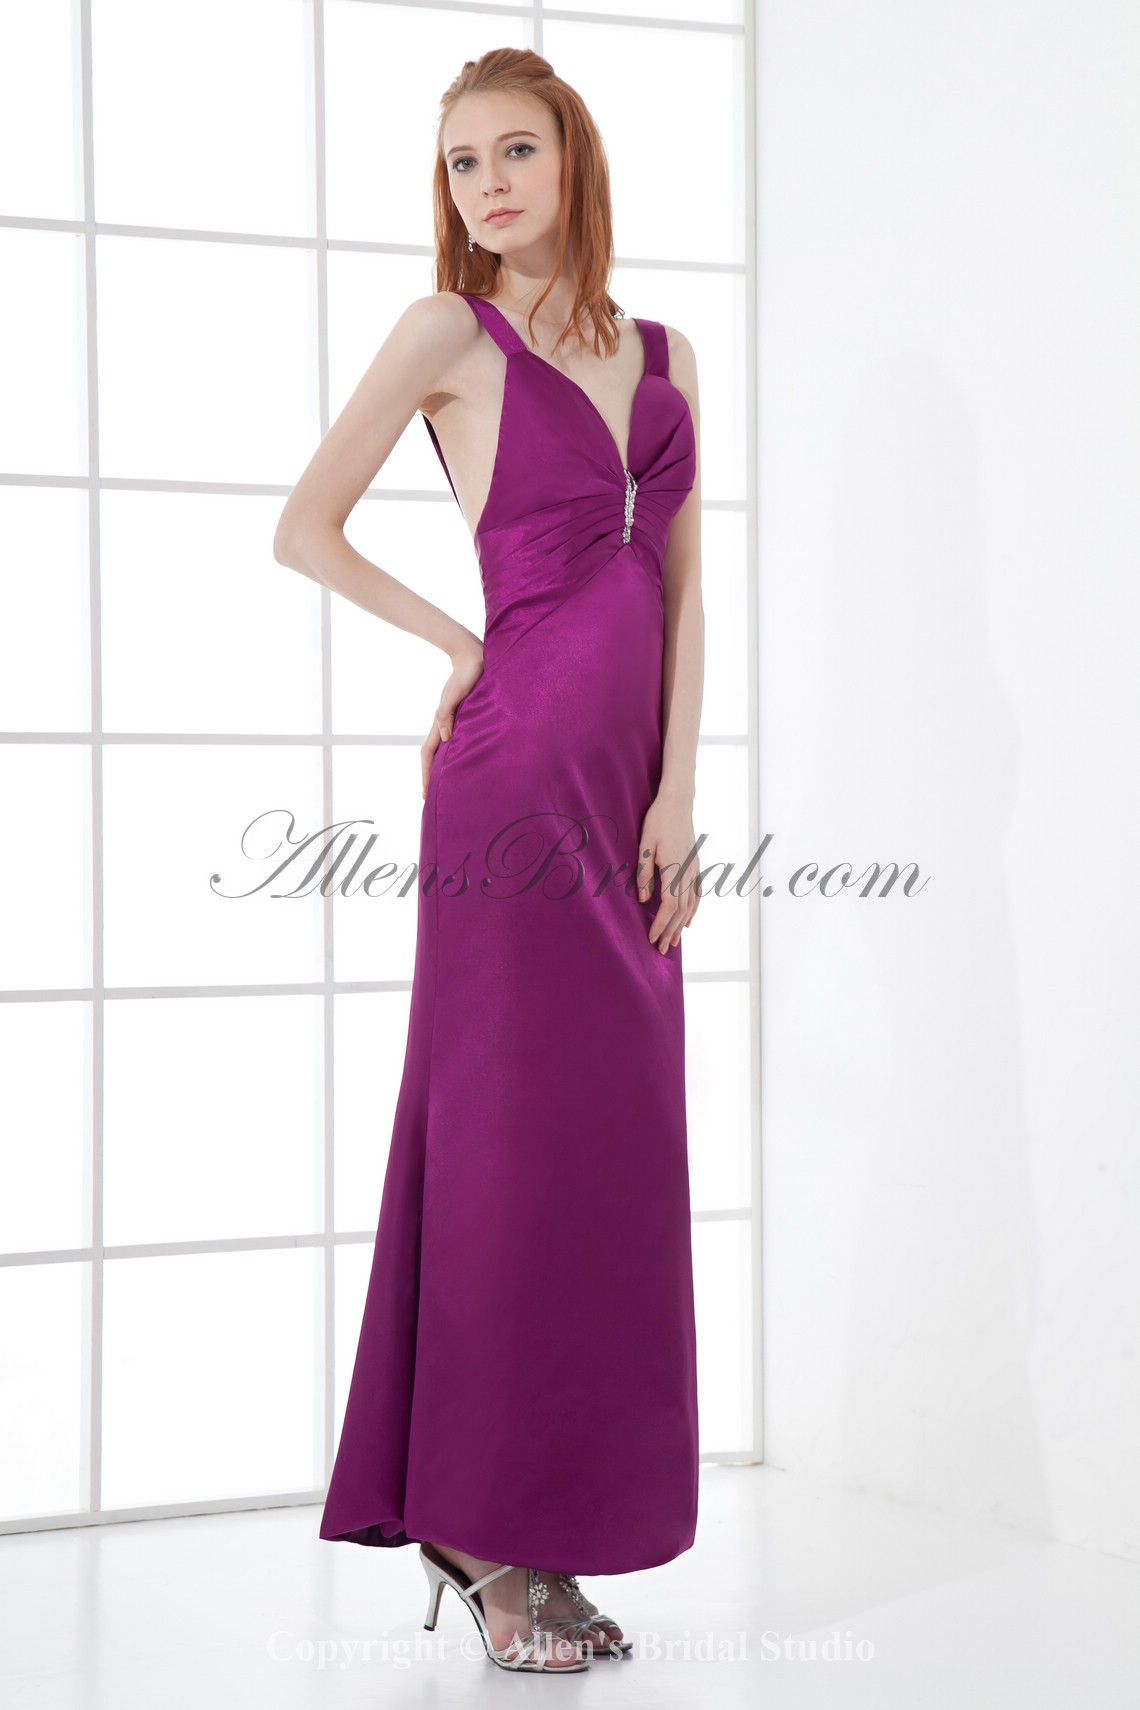 /68-541/satin-straps-sheath-ankle-length-sequins-prom-dress.jpg